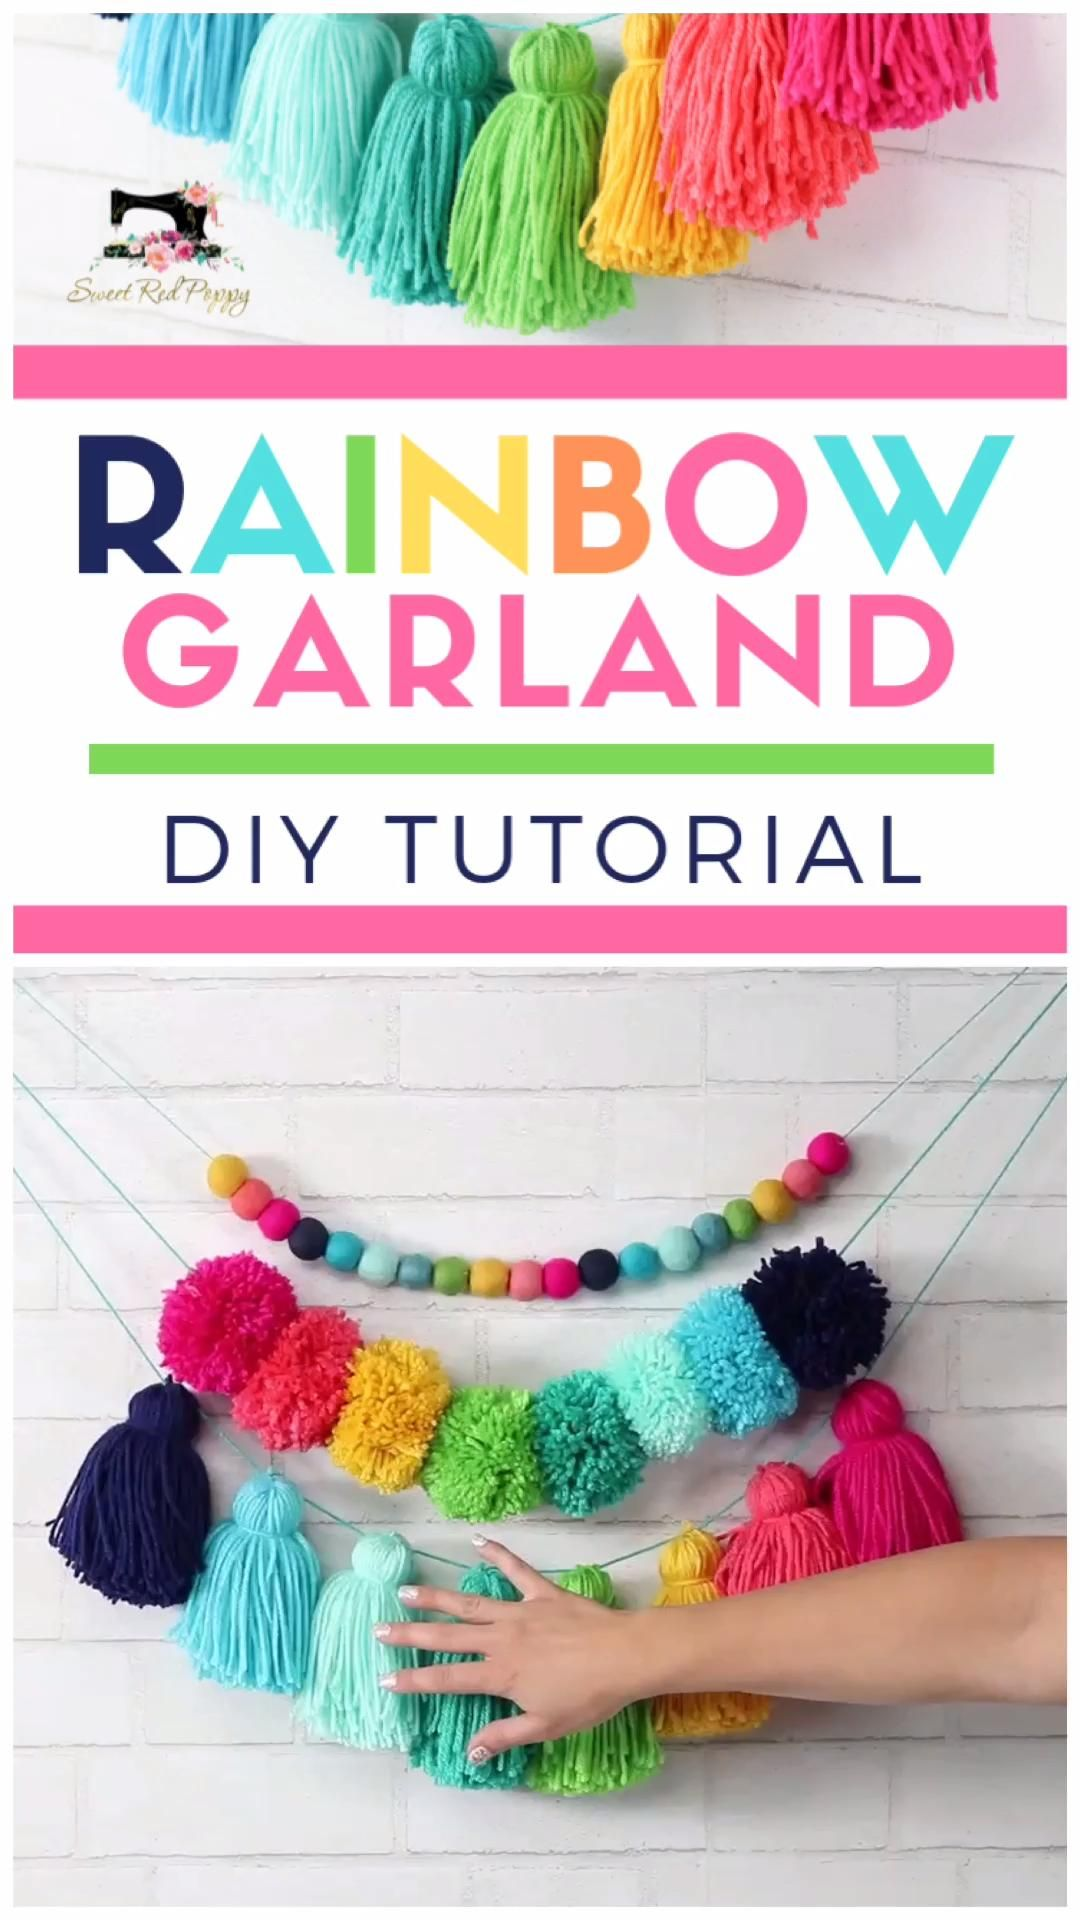 How To Make an Oversized Yarn Tassel Garland Rainbows make everything better and this adorable garland is sure to put a smile on your face every single time you see it!